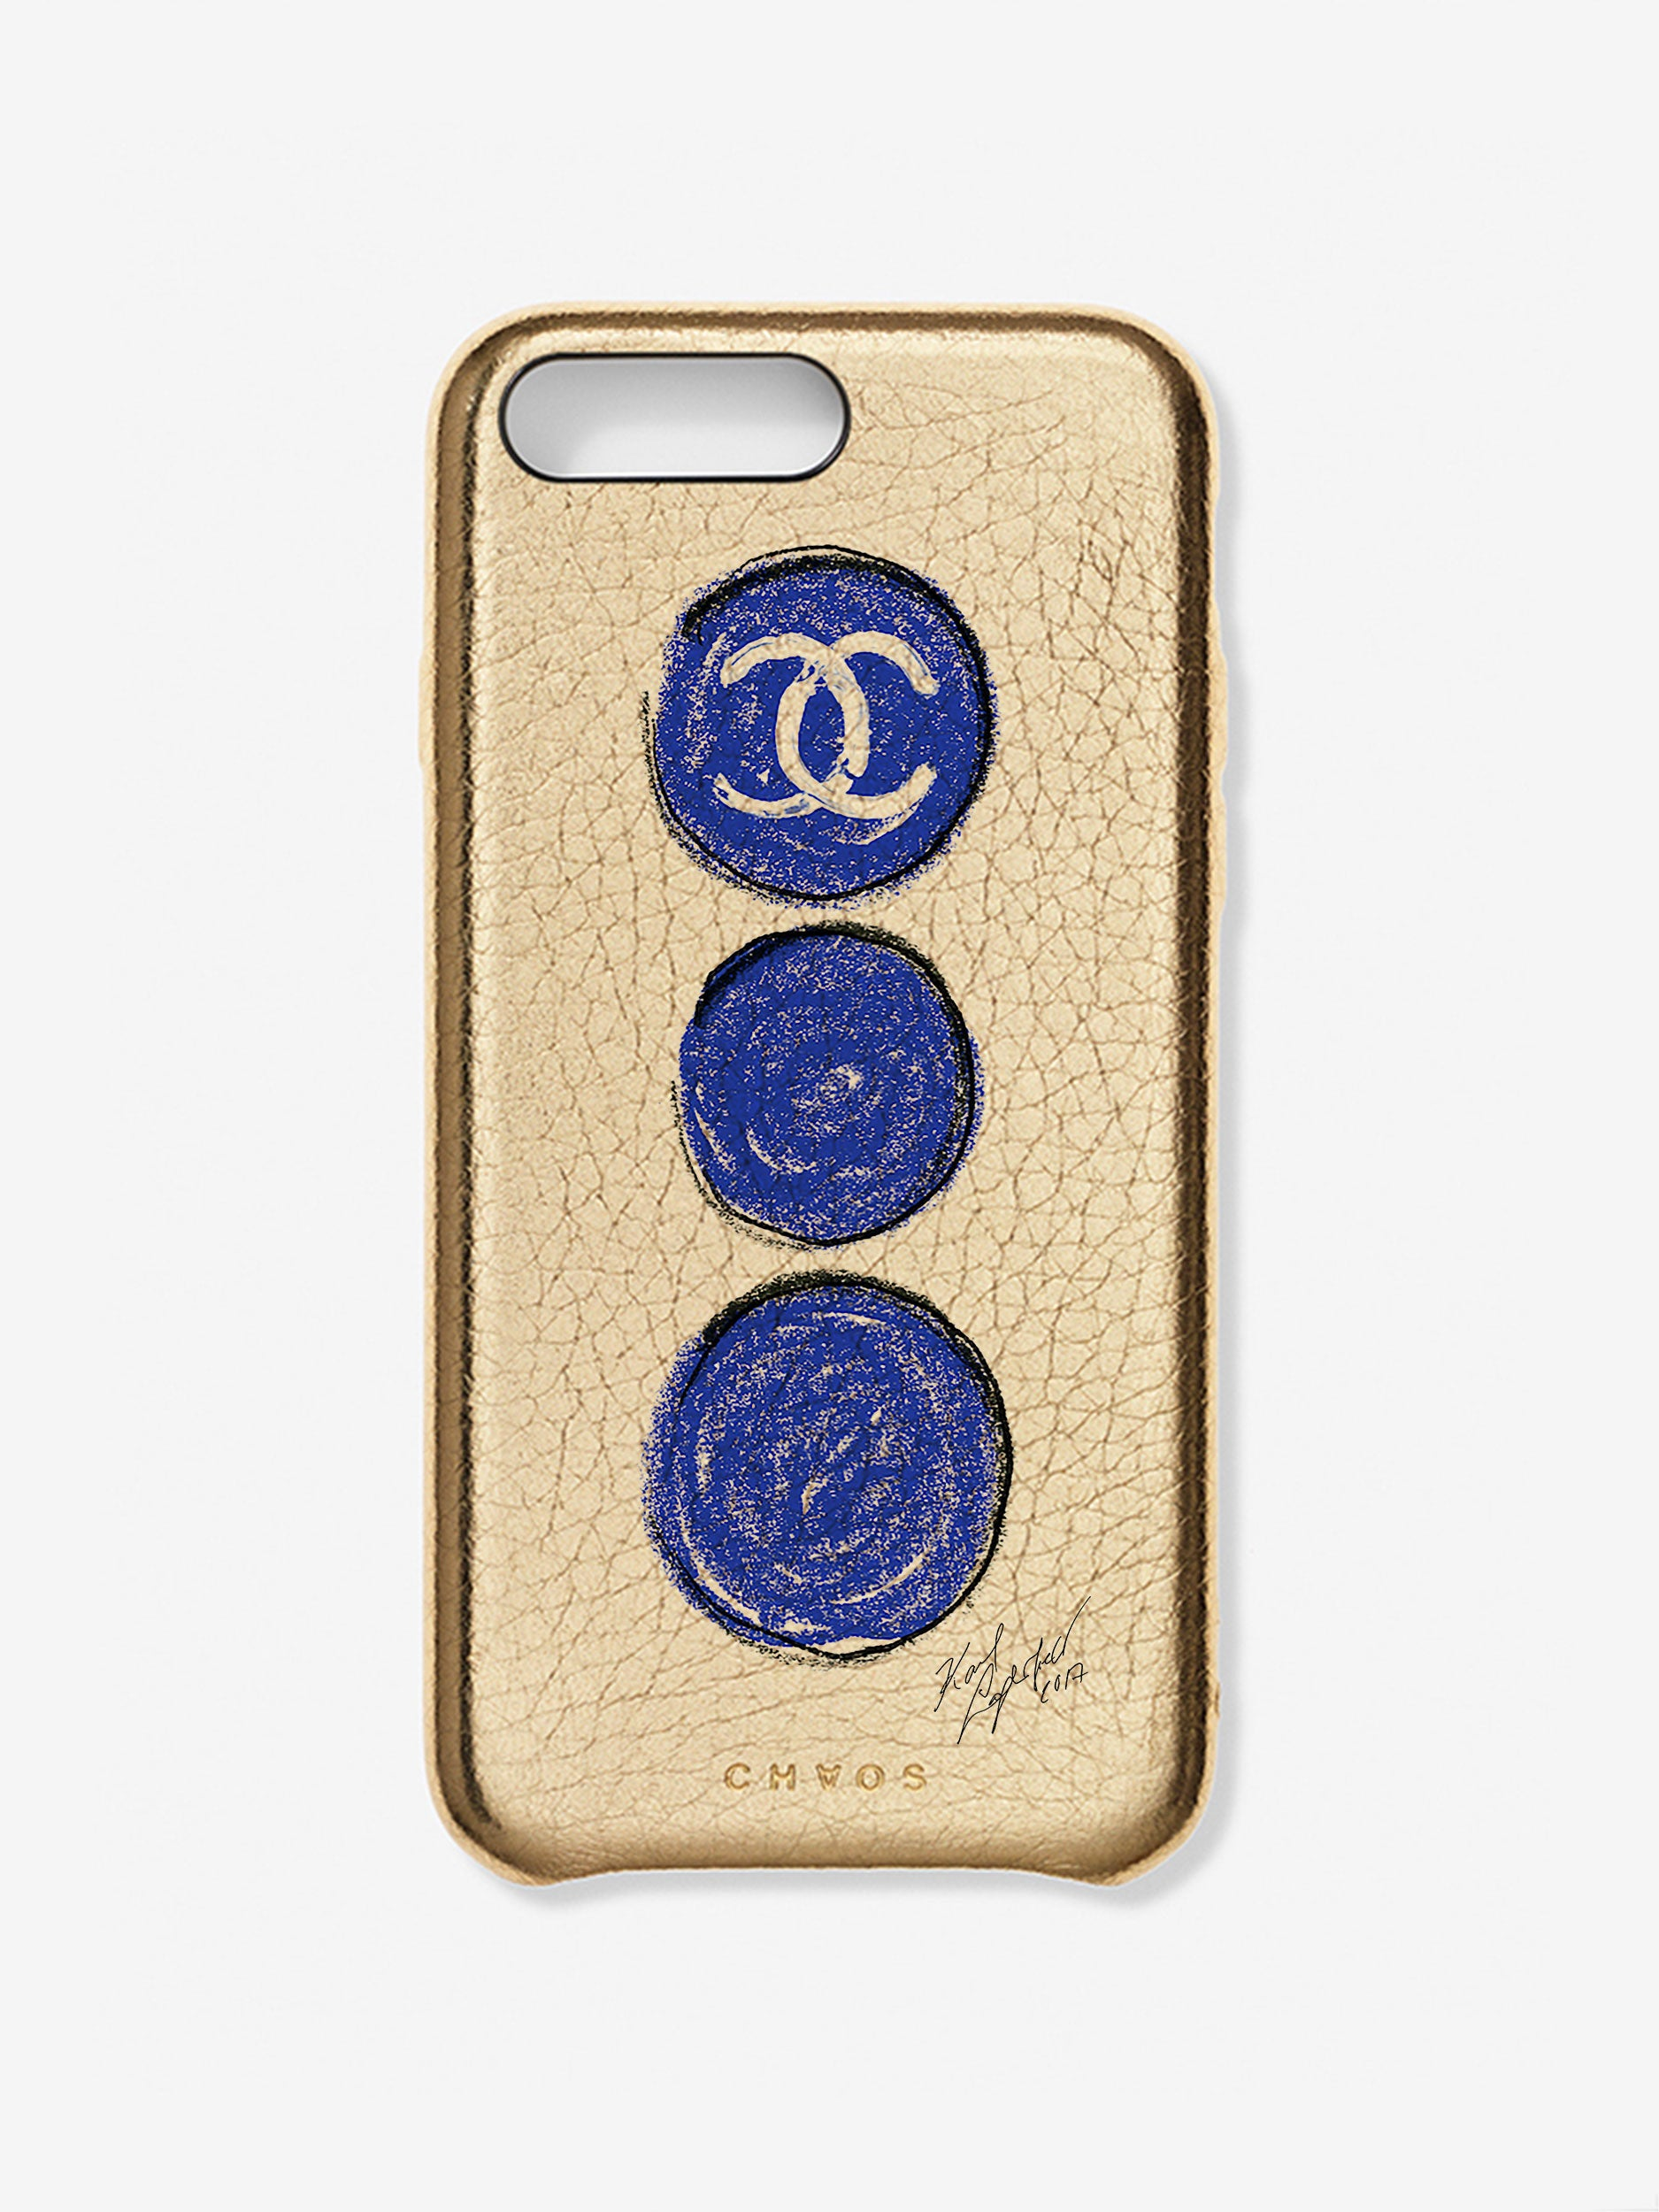 Chaos X Chanel X Colette Collaboration Case Gold